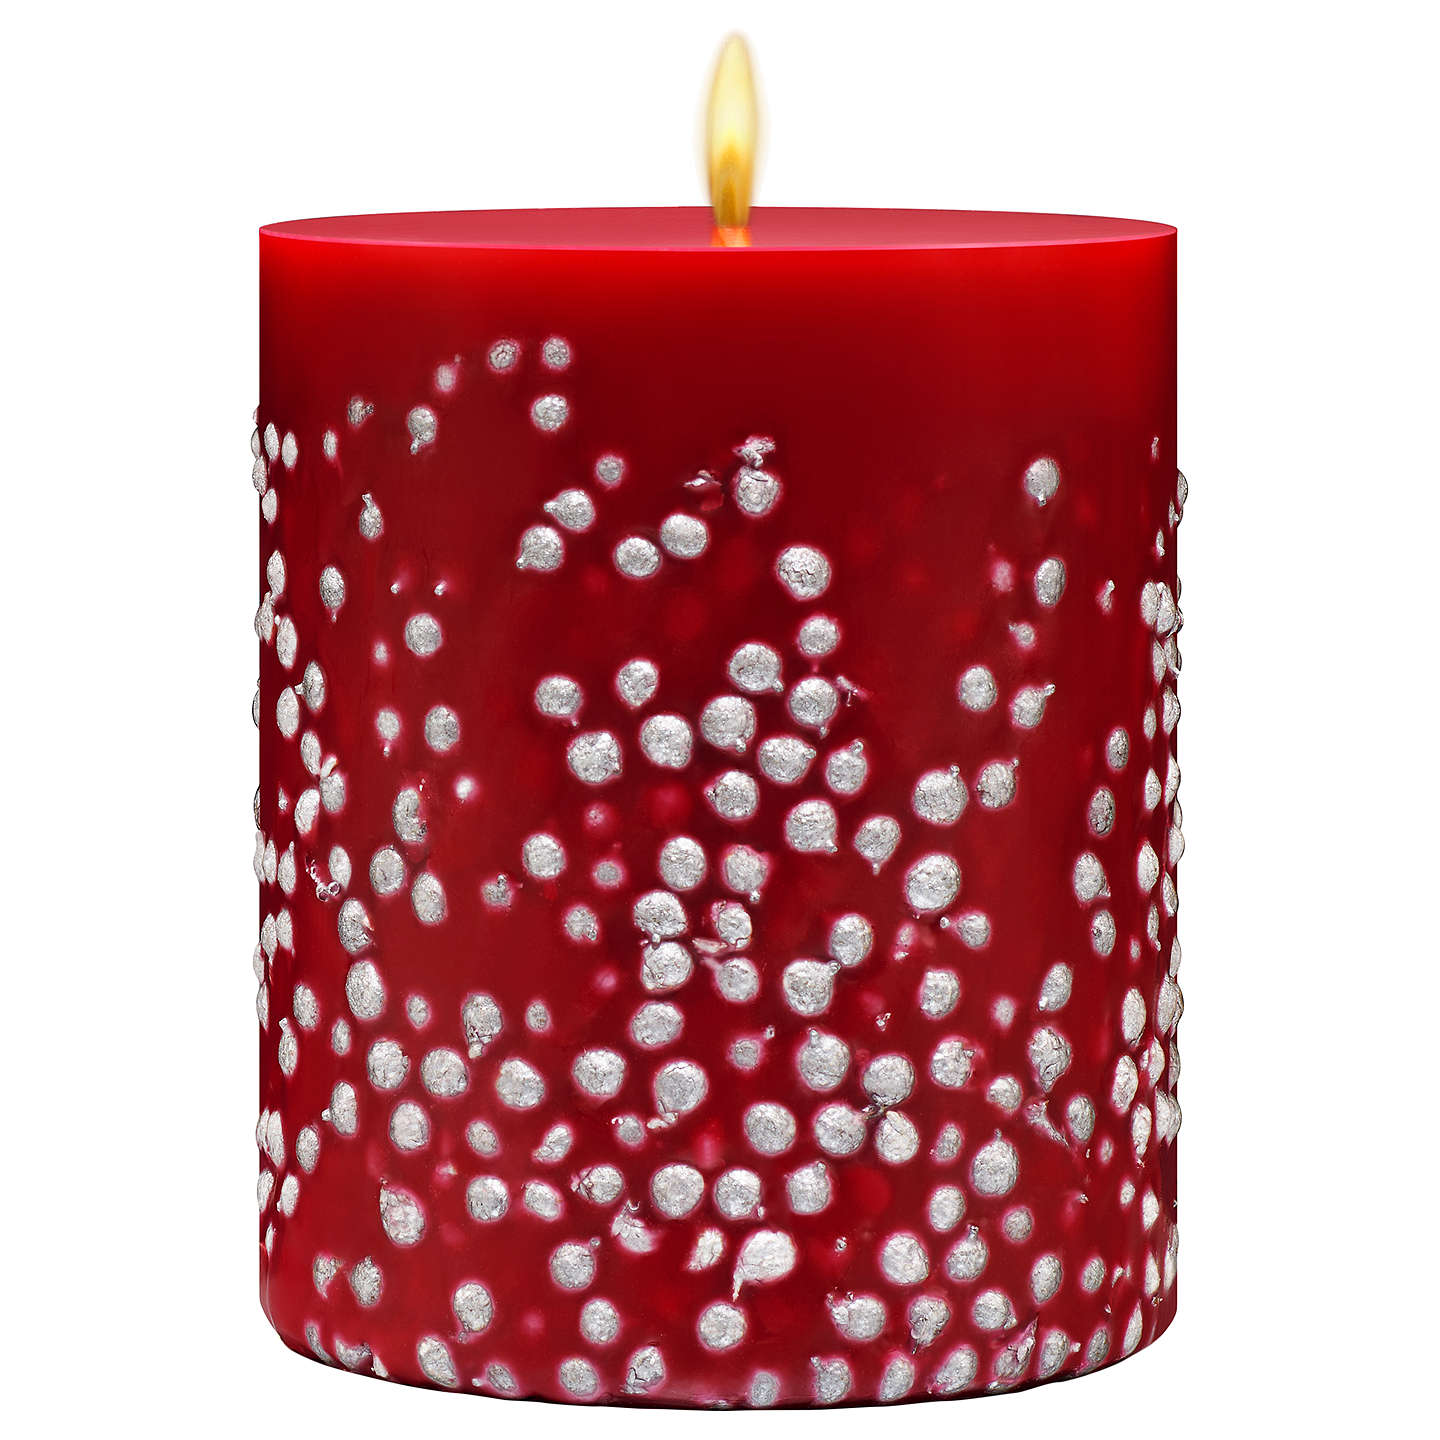 BuyAcqua di Parma Christmas Candle, 900g Online at johnlewis.com